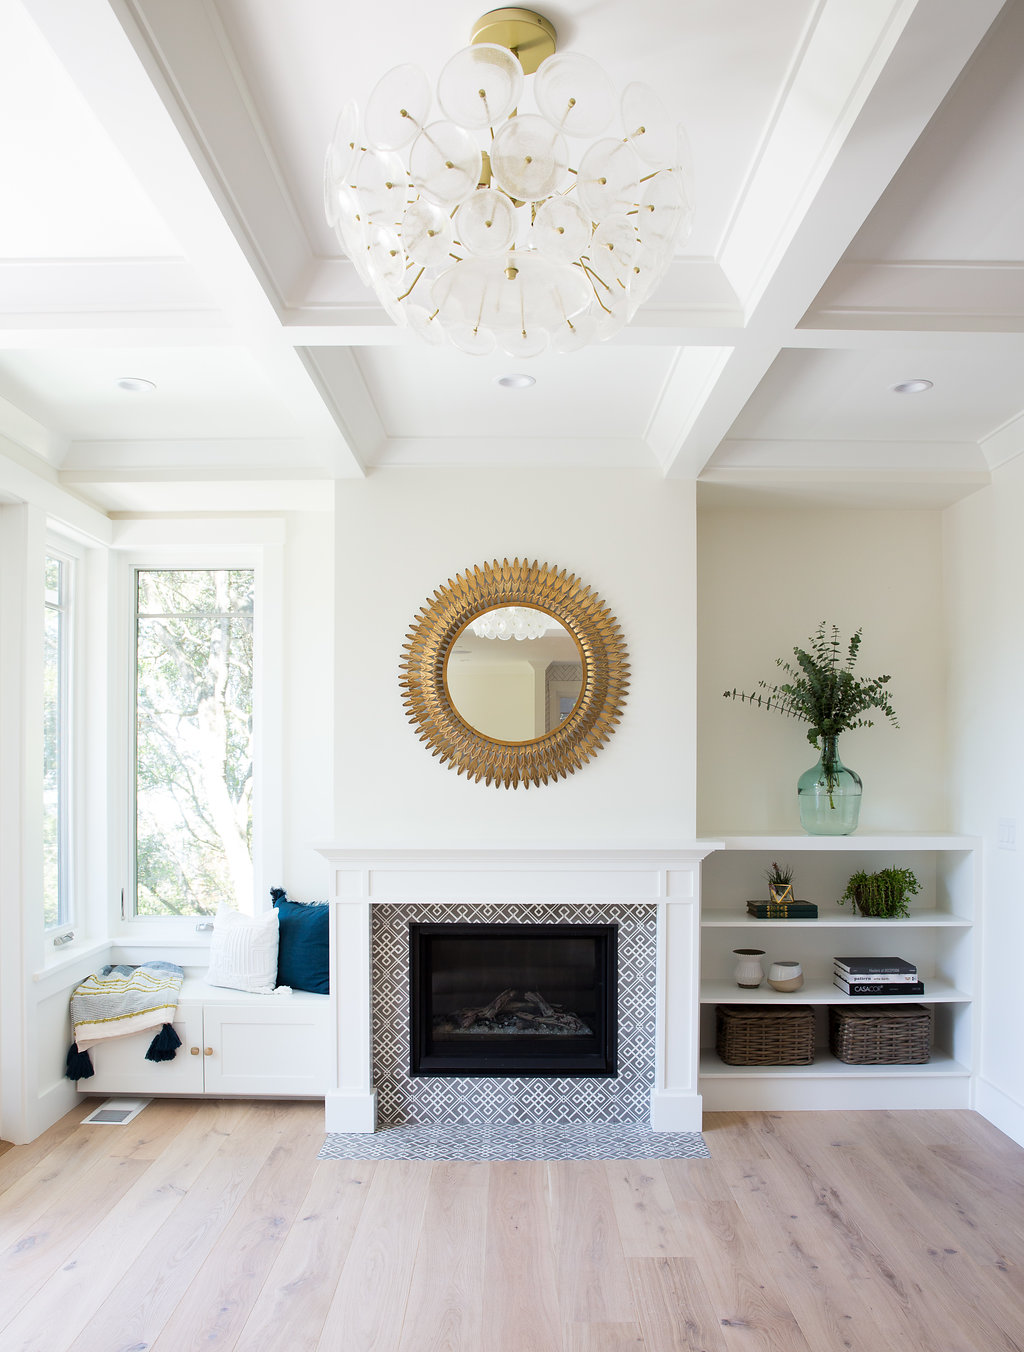 Love & Interiors Berkeley Modern Craftsman Fireplace with Cement Tile and Built-Ins and Tray Ceiling - Brass Mirror and Light.jpg